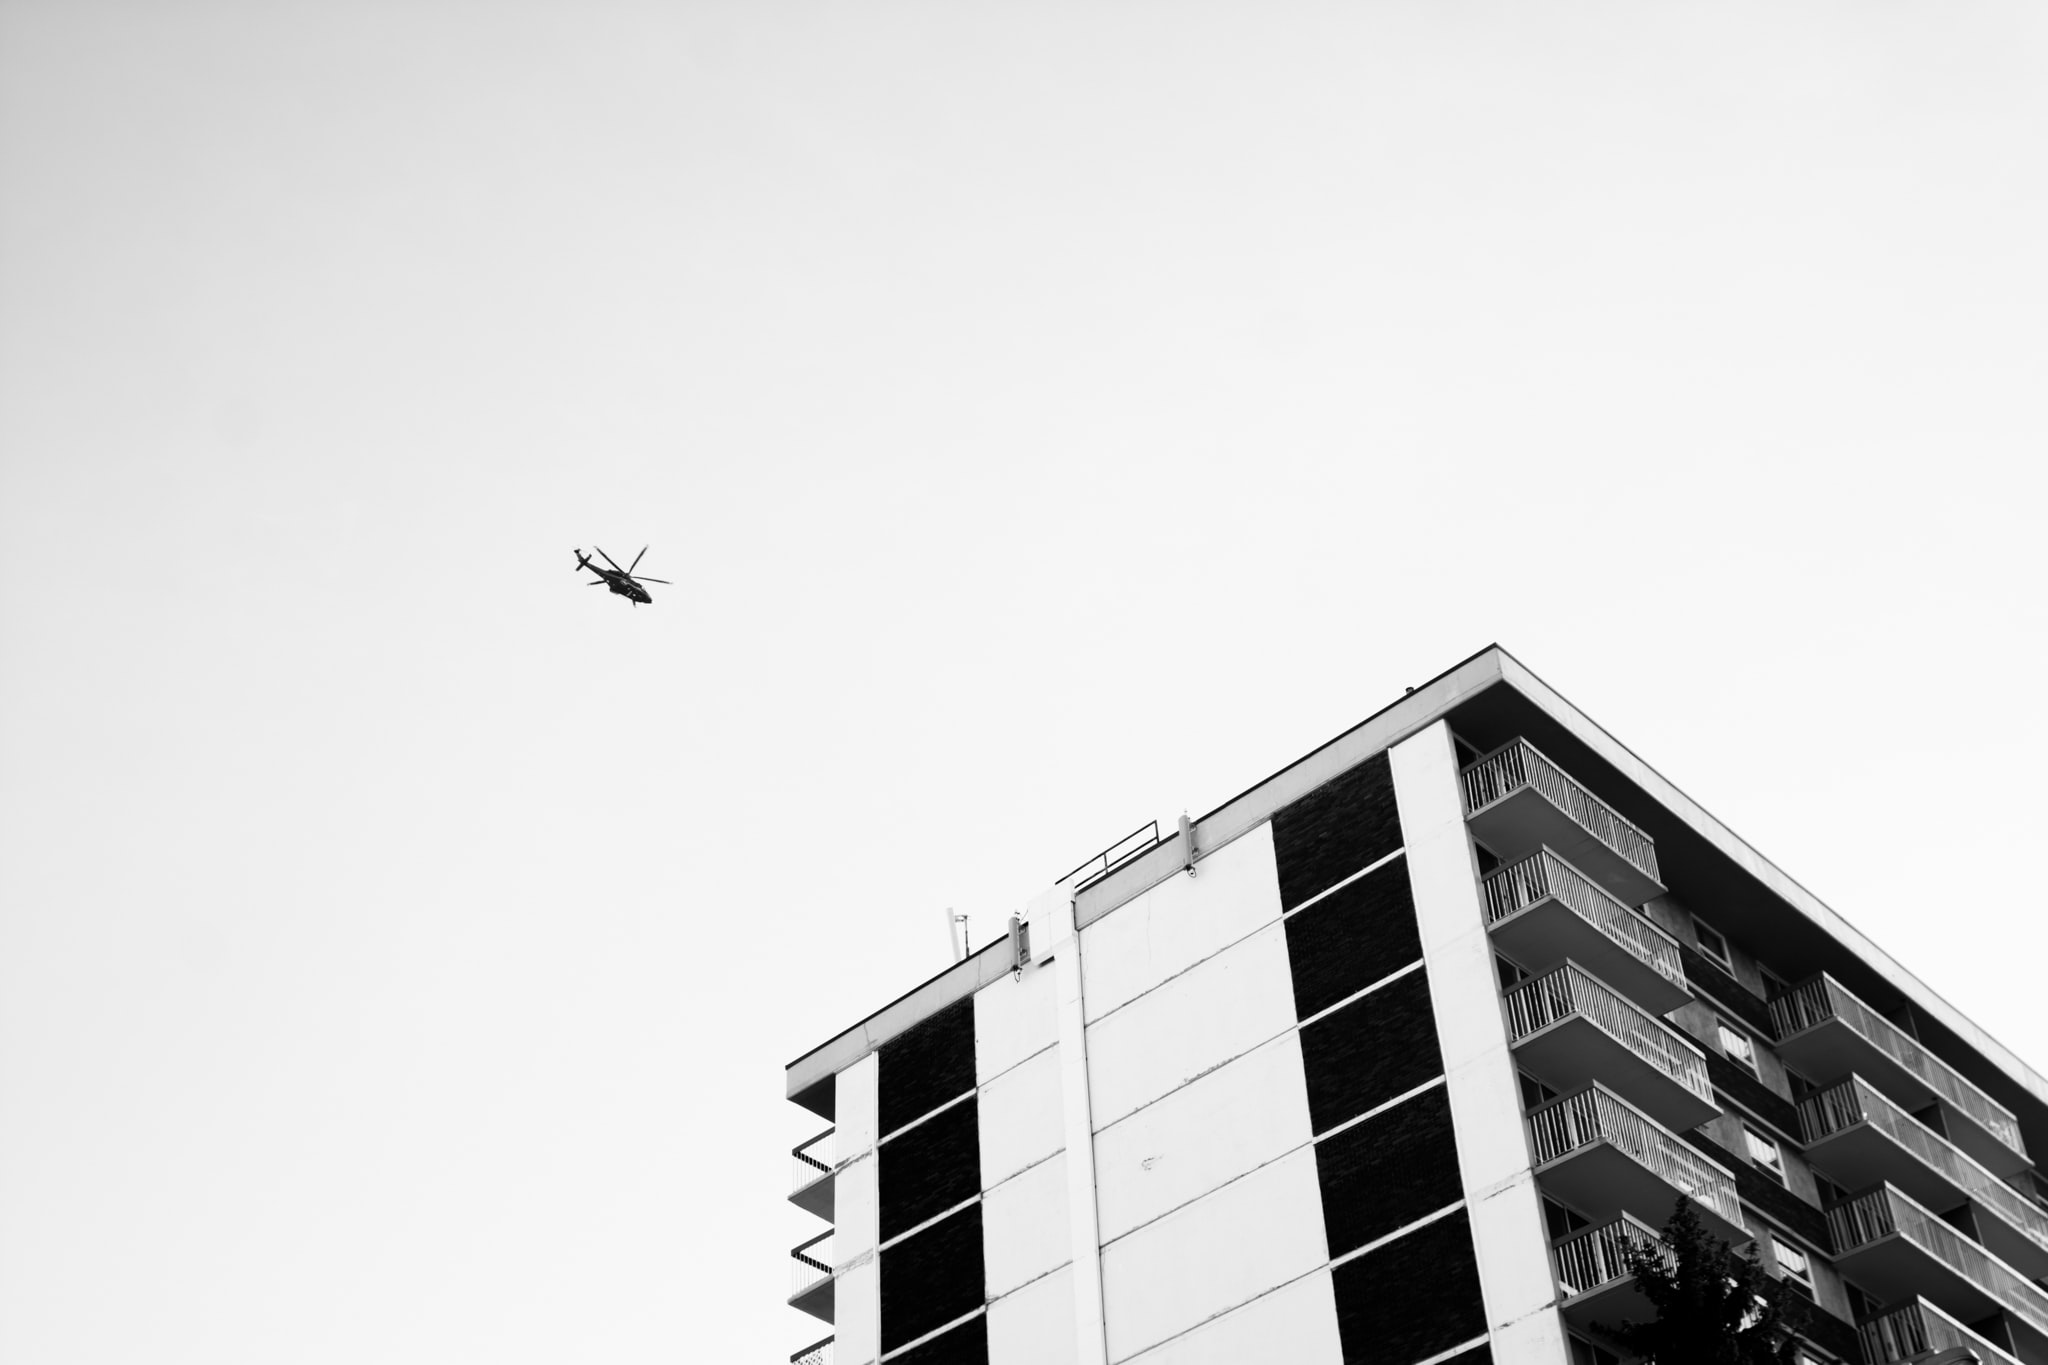 A helicopter is flying above an apartment building.